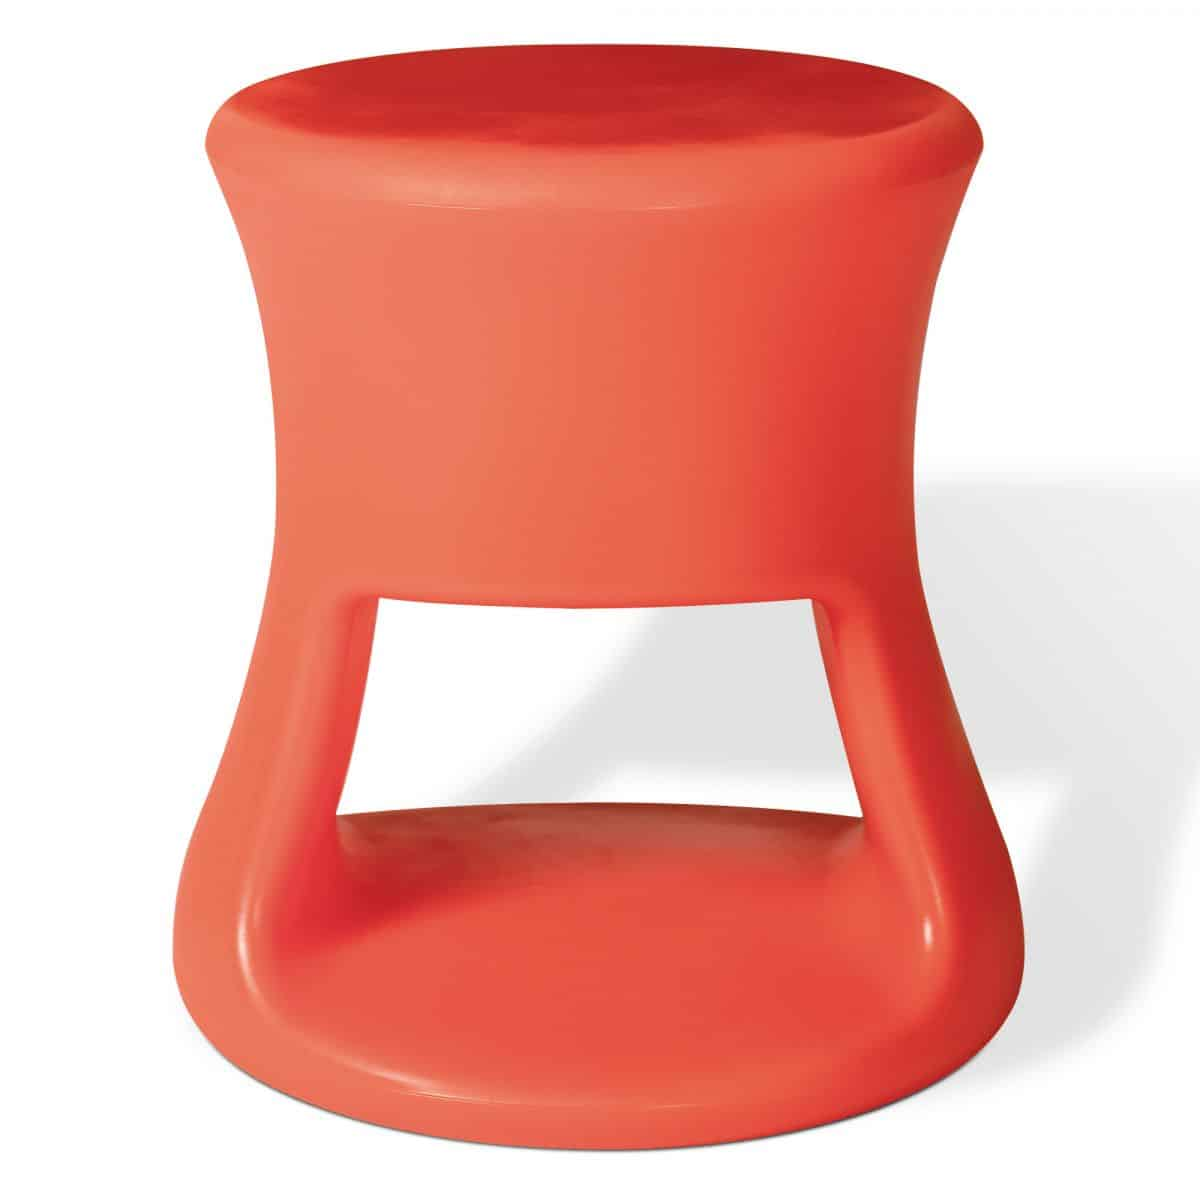 hello, Wonderful - 5 MODERN STOOLS FOR KIDS